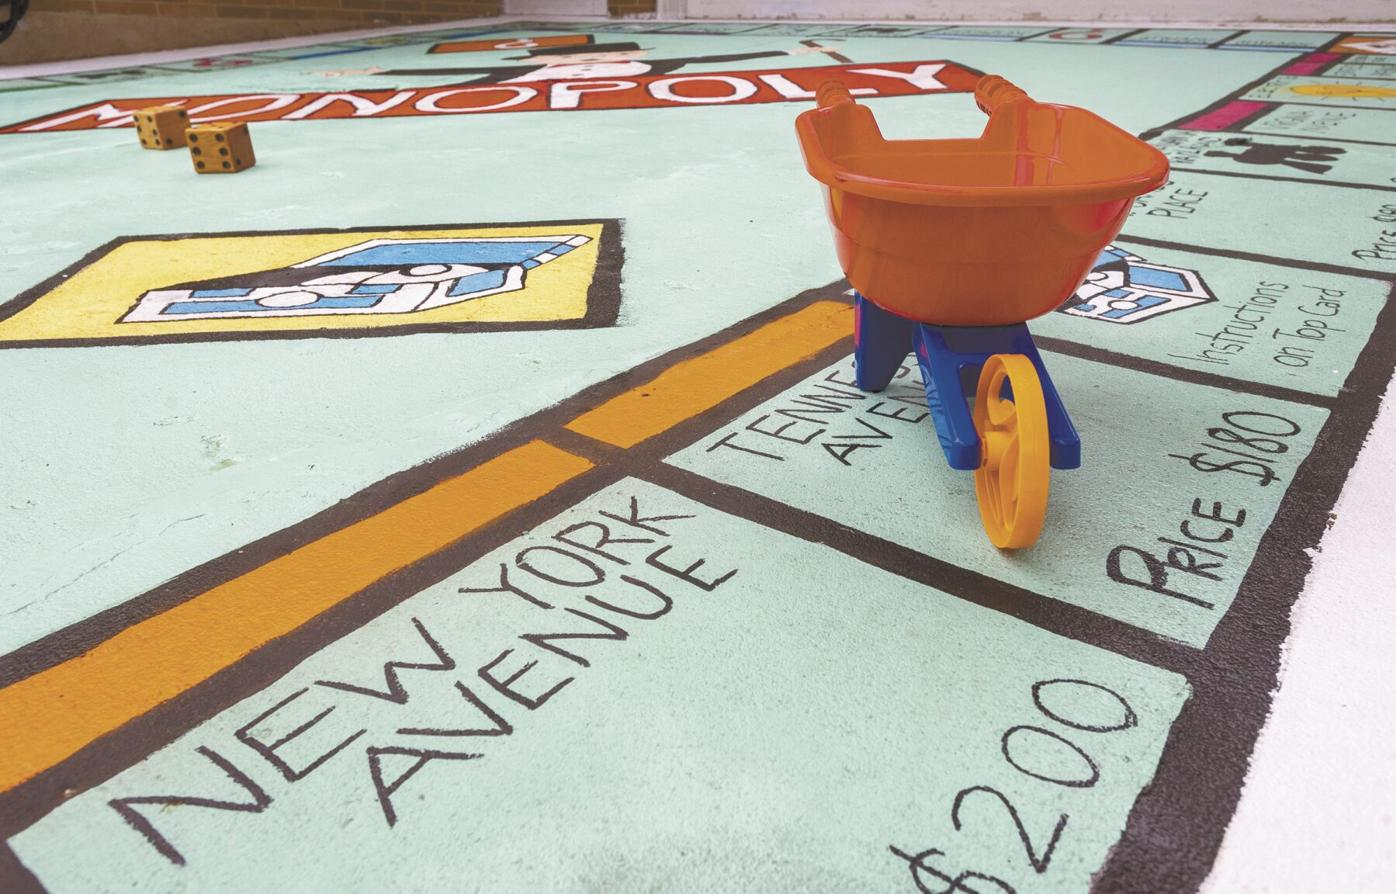 life-sized Monopoly game board